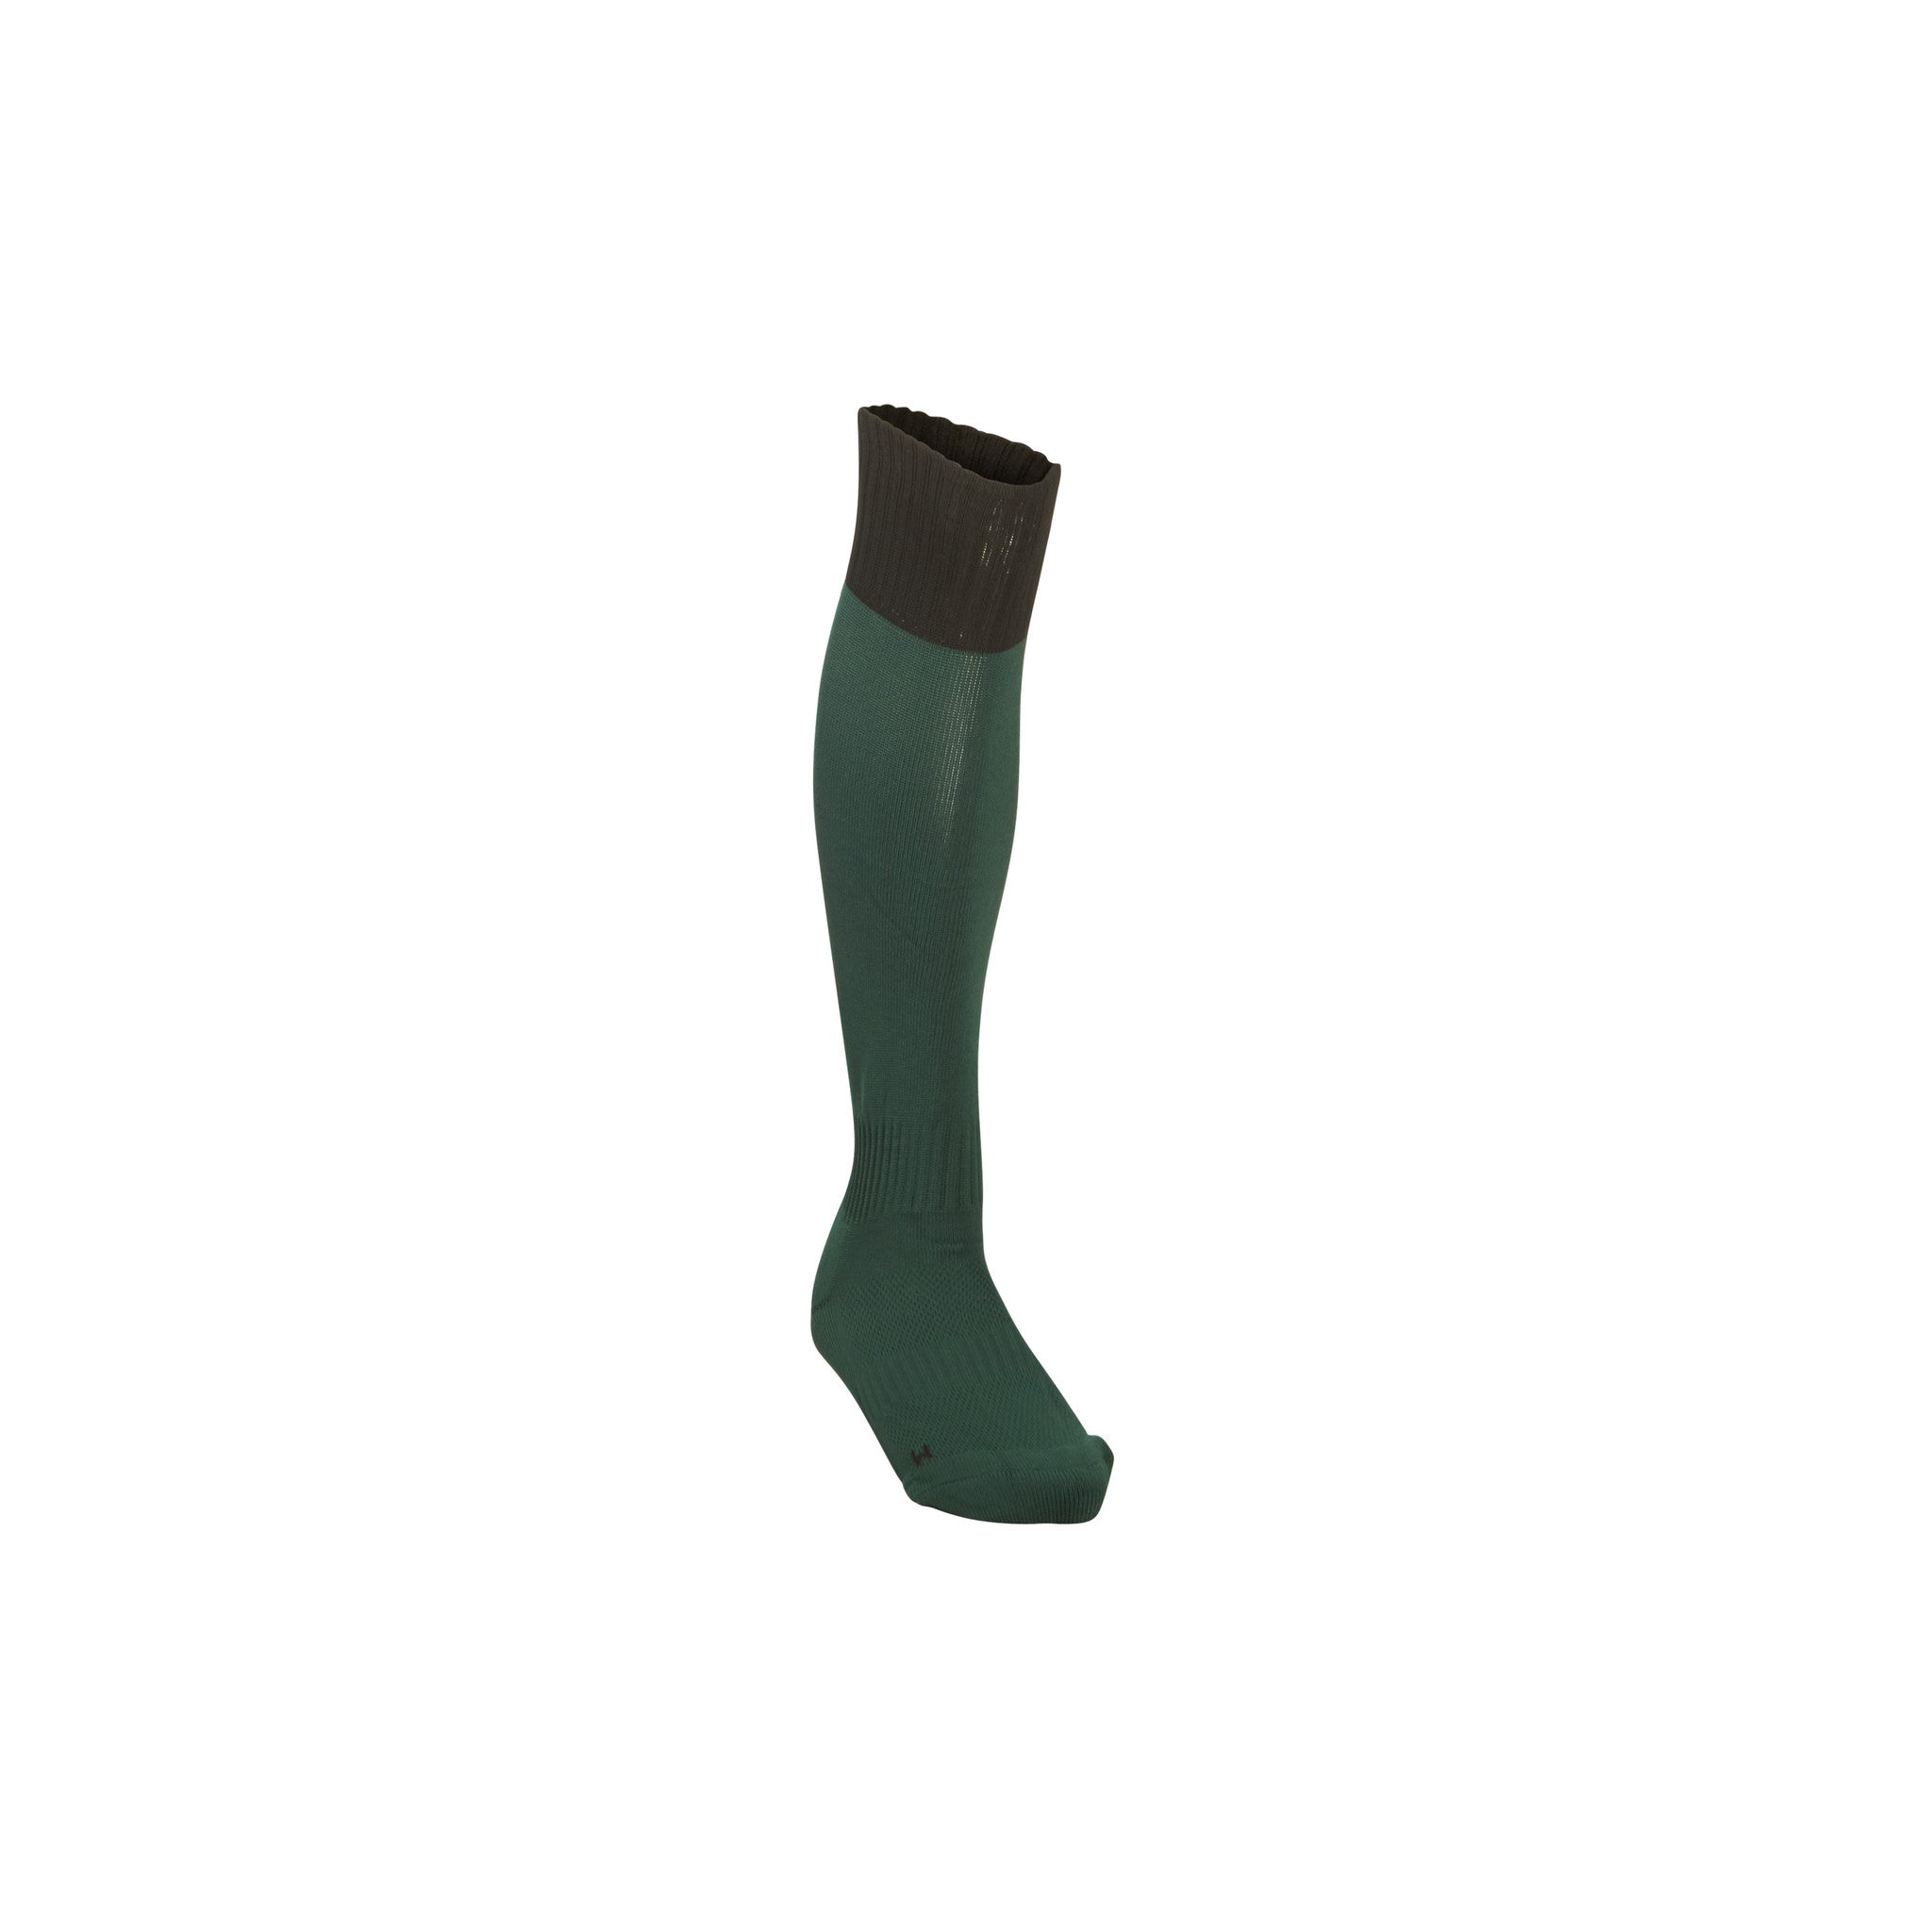 Bede's Green & Black Sports/Games Socks Junior Sizes 12 - 3